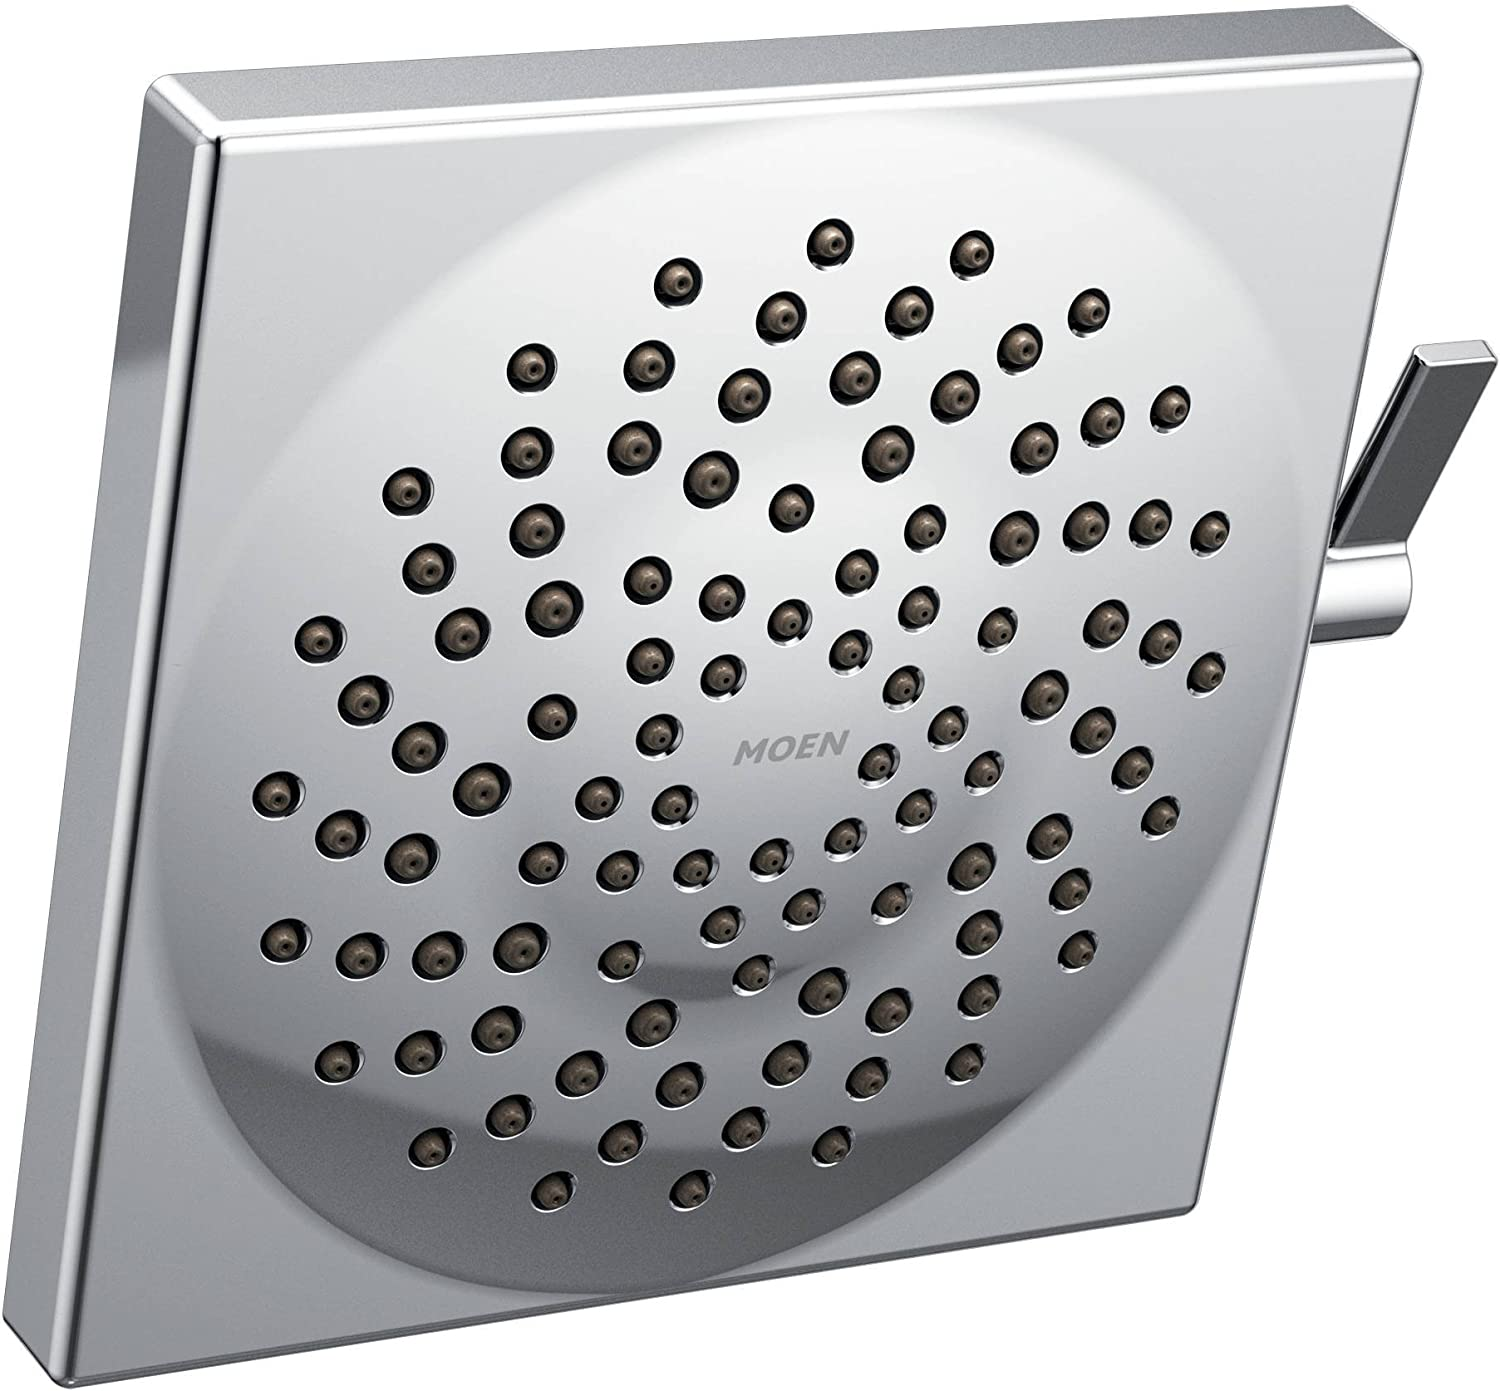 Moen S6345 Velocity Two-Function 8.5-Inch Diameter Spray Rainshower Showerhead, Chrome